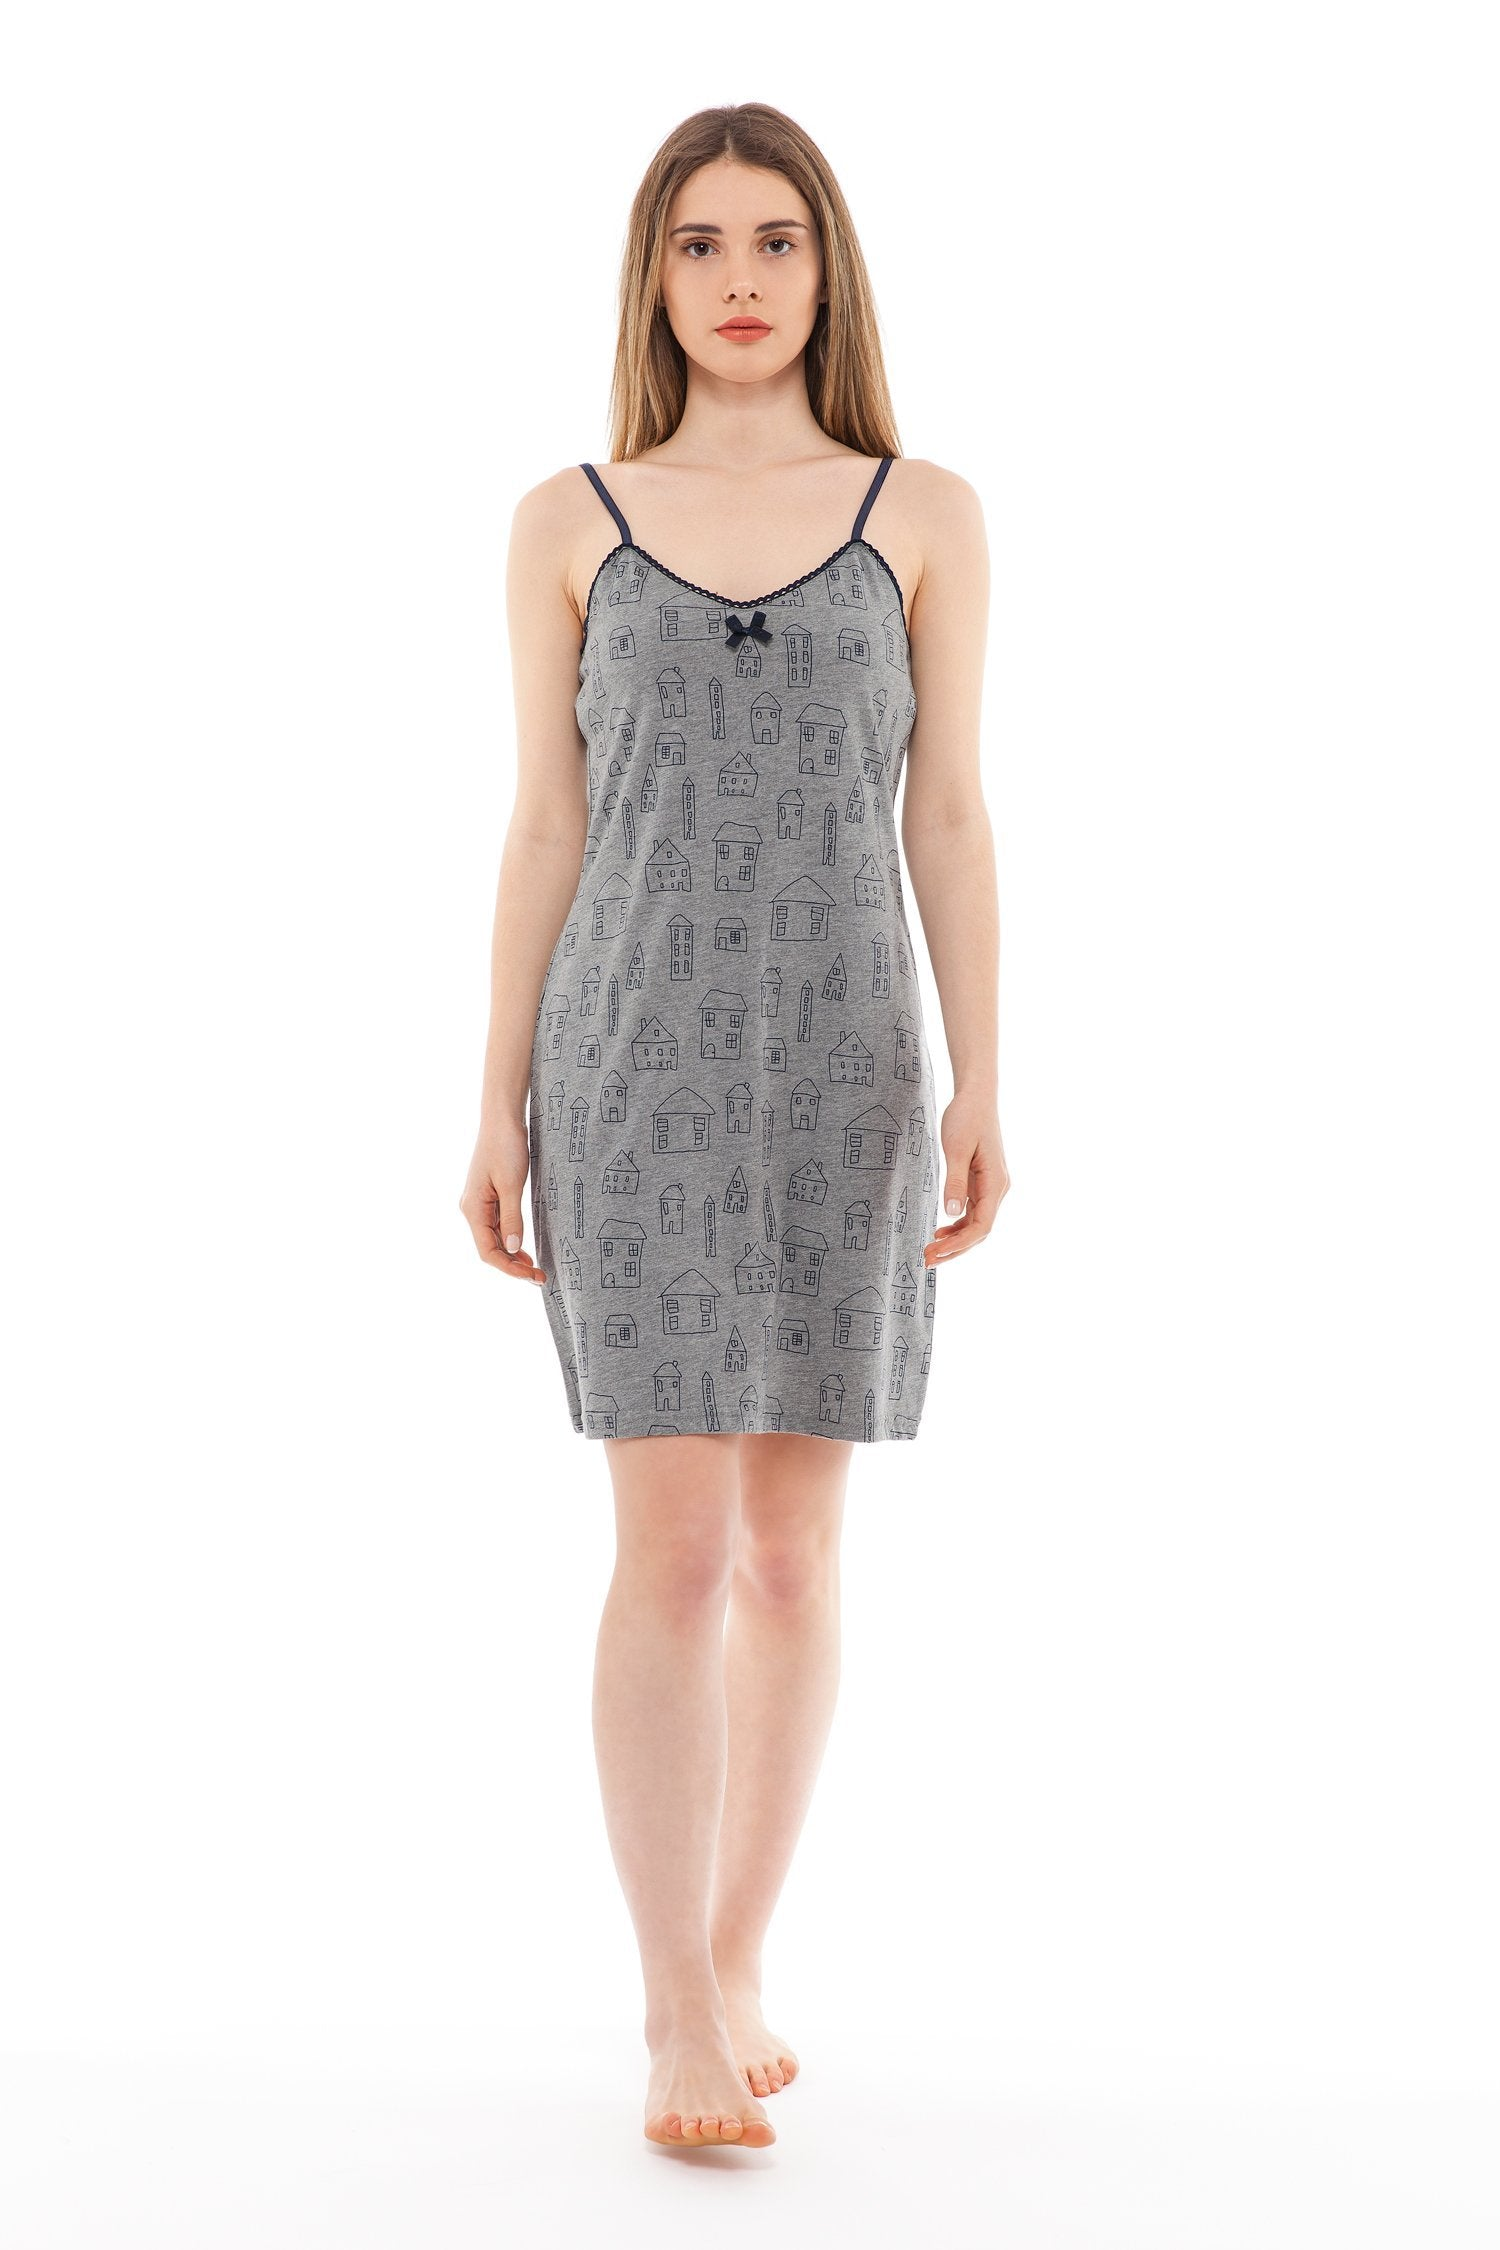 chassca nightdress with house print